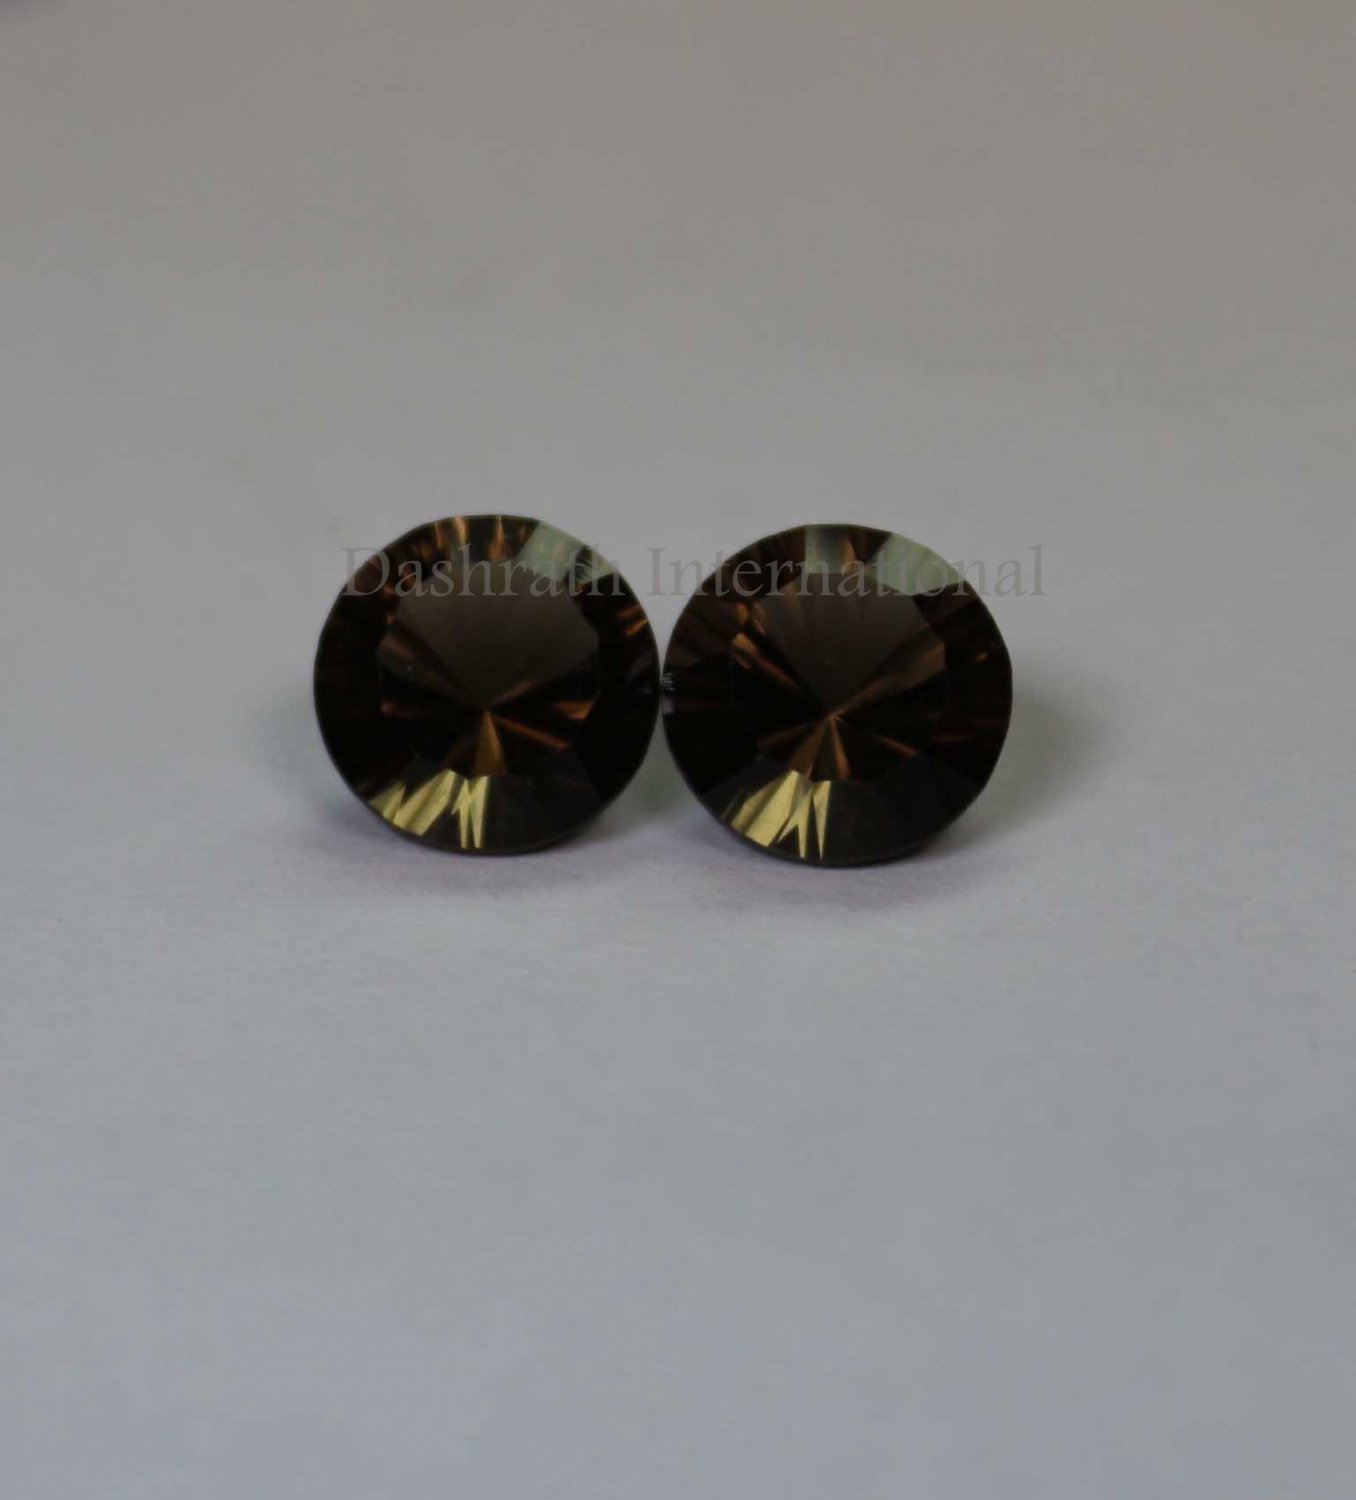 8mmNatural Smoky Quartz Concave Cut Round 2 Piece (1 Pair ) (SI) Top Quality  Loose Gemstone